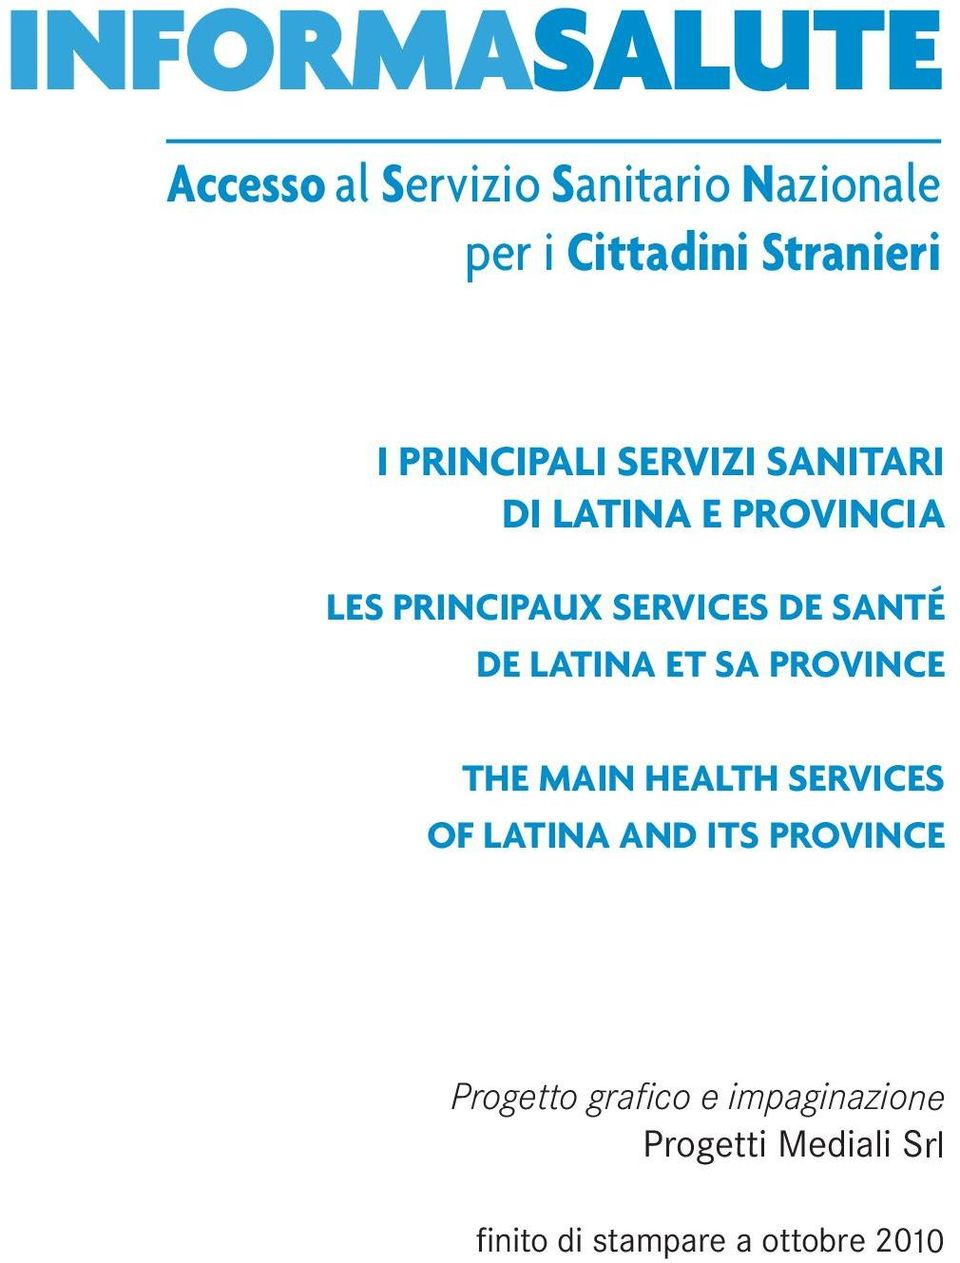 DE LATINA ET SA PROVINCE THE MAIN HEALTH SERVICES OF LATINA AND ITS PROVINCE